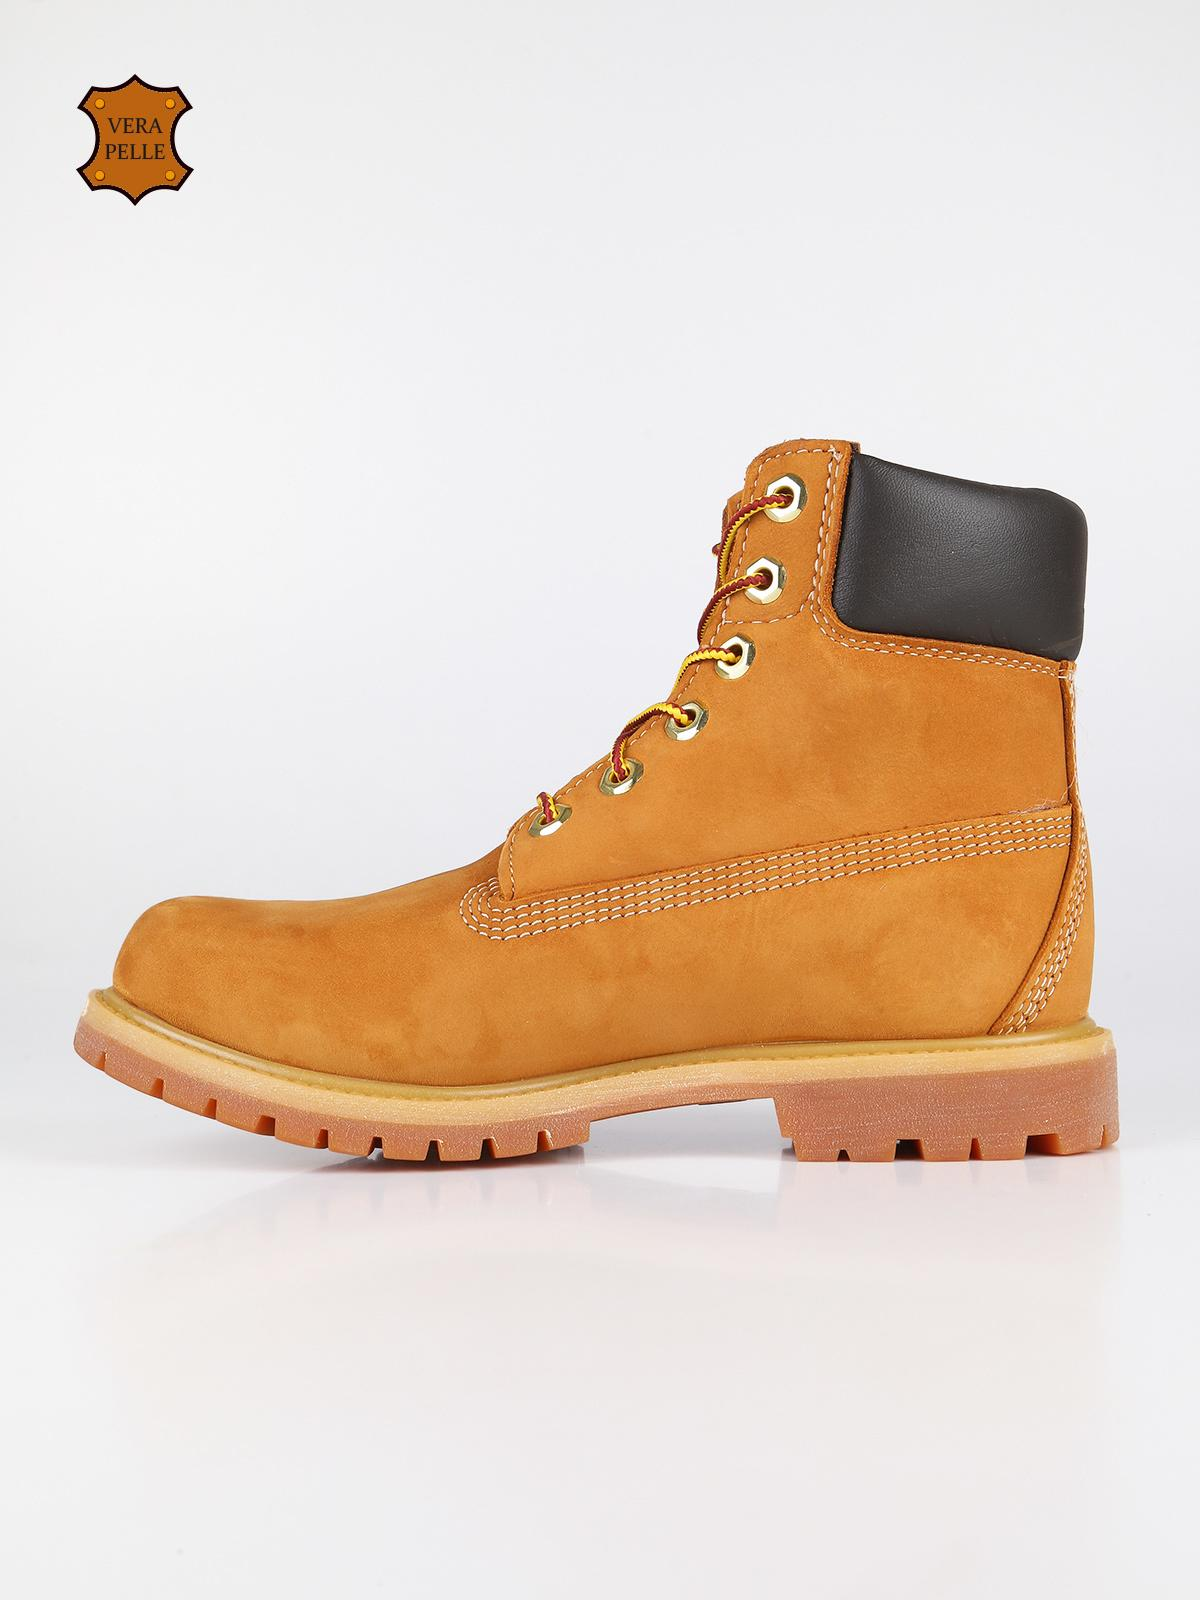 competitive price b25d0 bf53a timberland Scarponcini donna premium 6 inch giallo | MecShopping